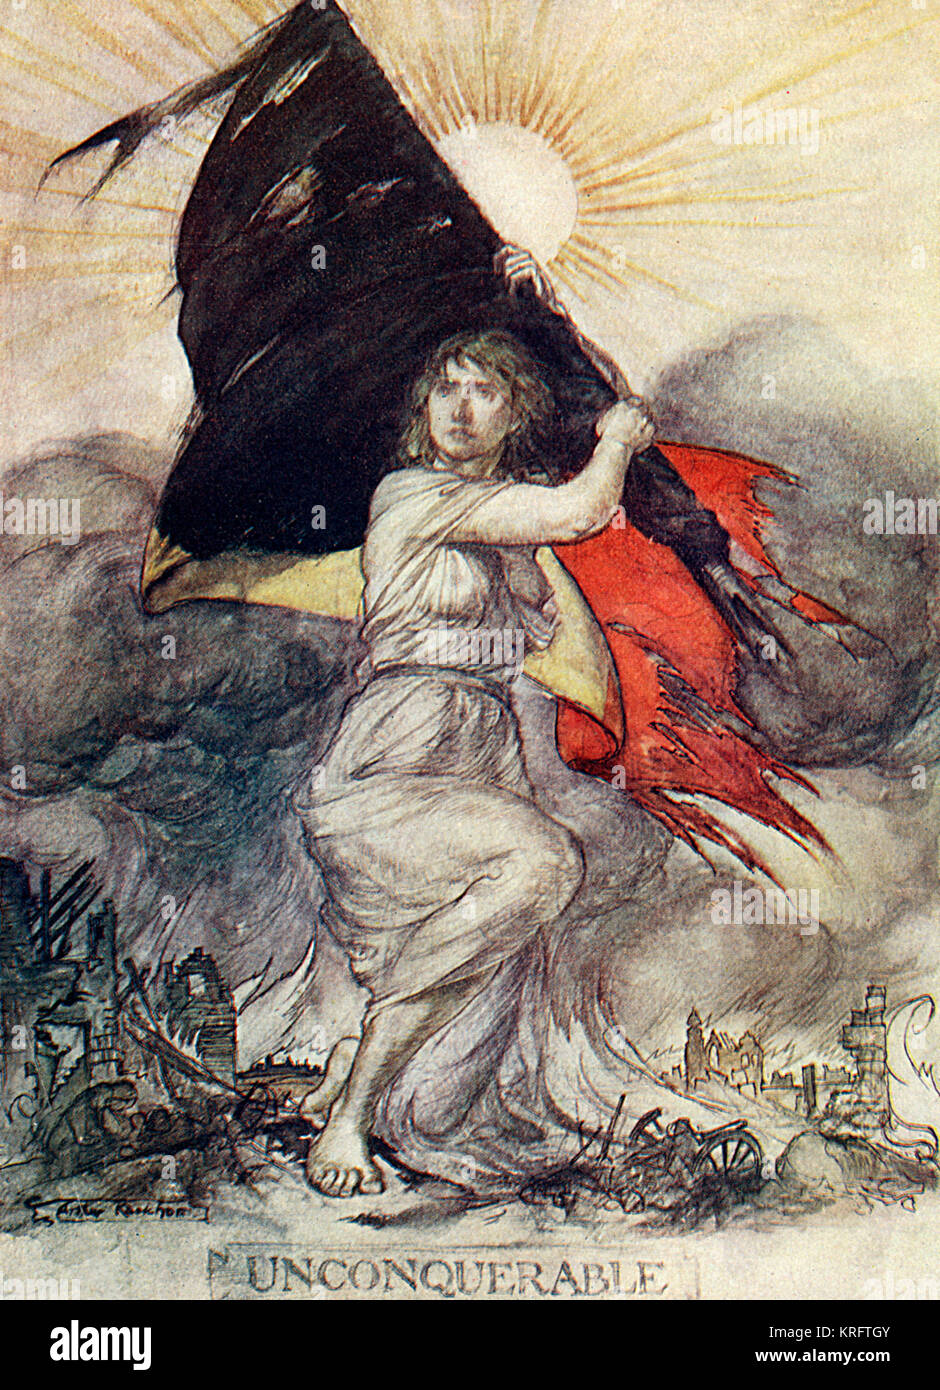 Marianne, symbol of France, defiant holds the tattered French flag aloft amid the carnage of a landscape battered - Stock Image